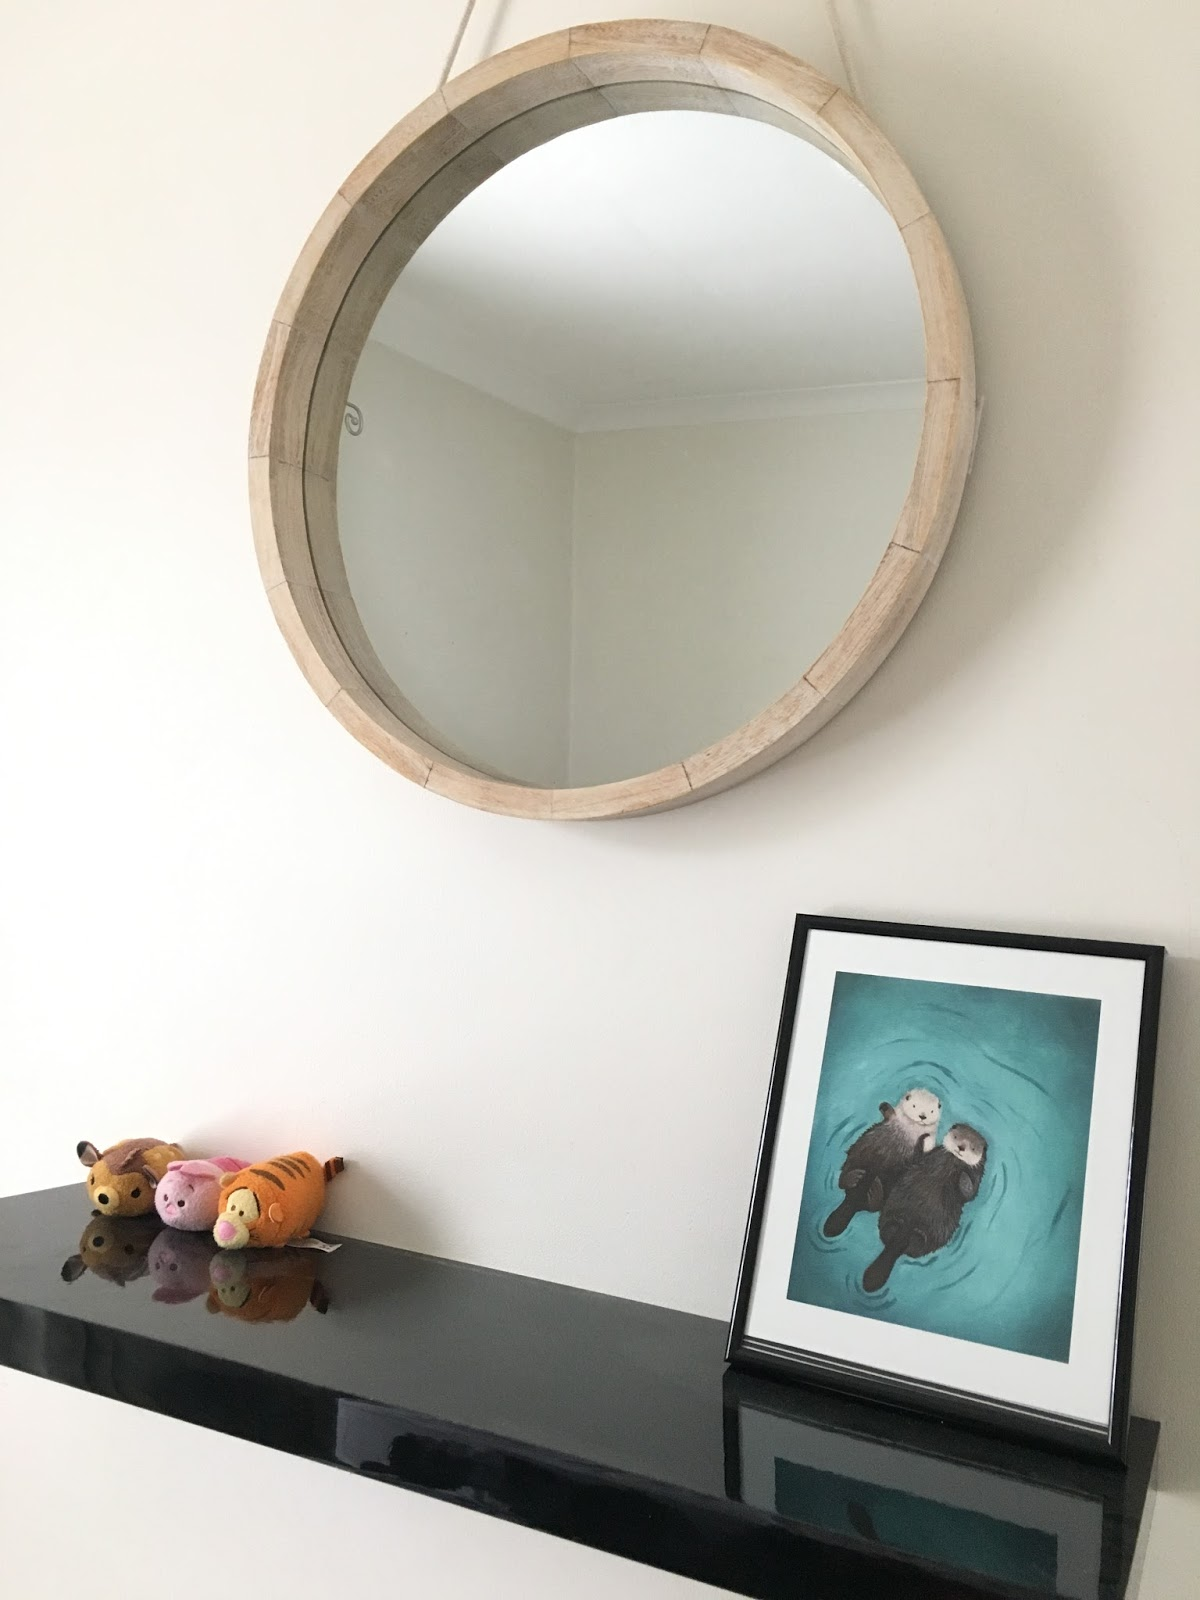 Sweet allure my bedroom makeover wishlist 2016 interiors Scandinavian design mirror tsum tsum otters print frame